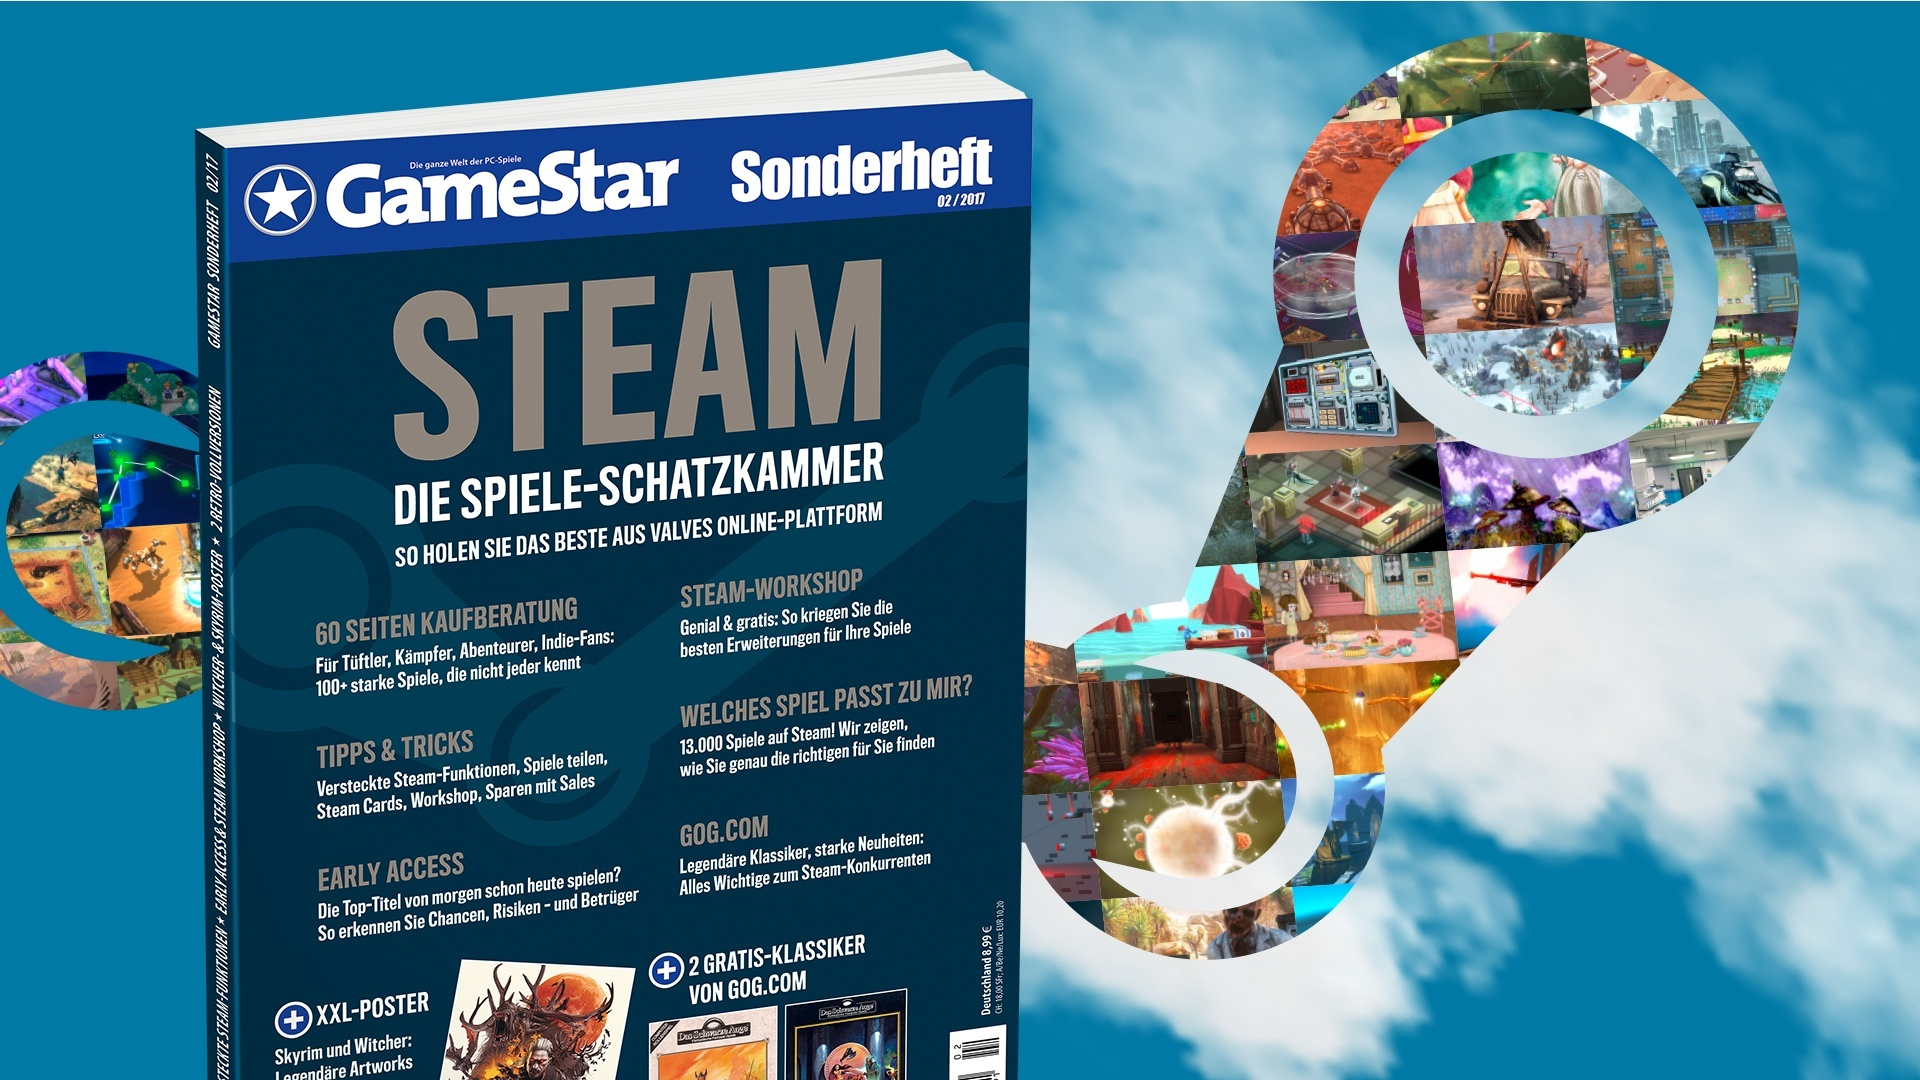 GameStar Steam Sonderheft